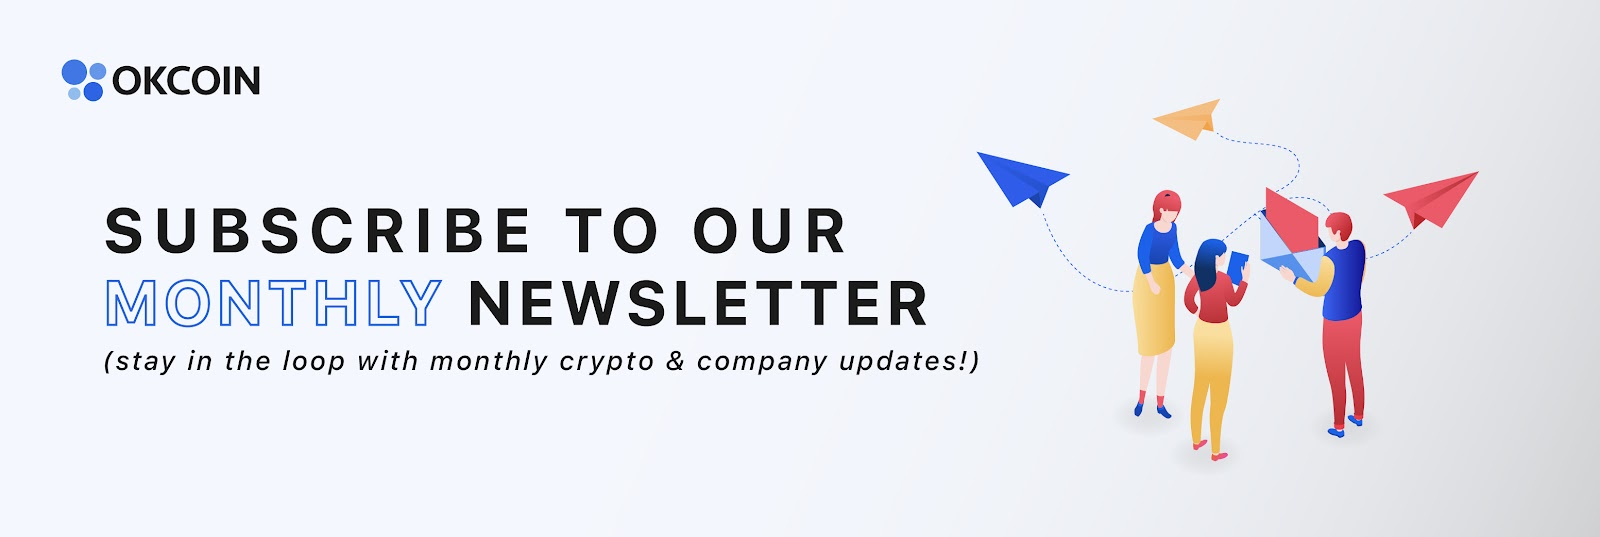 Newsletter - The Social Element of Bitcoin Communities